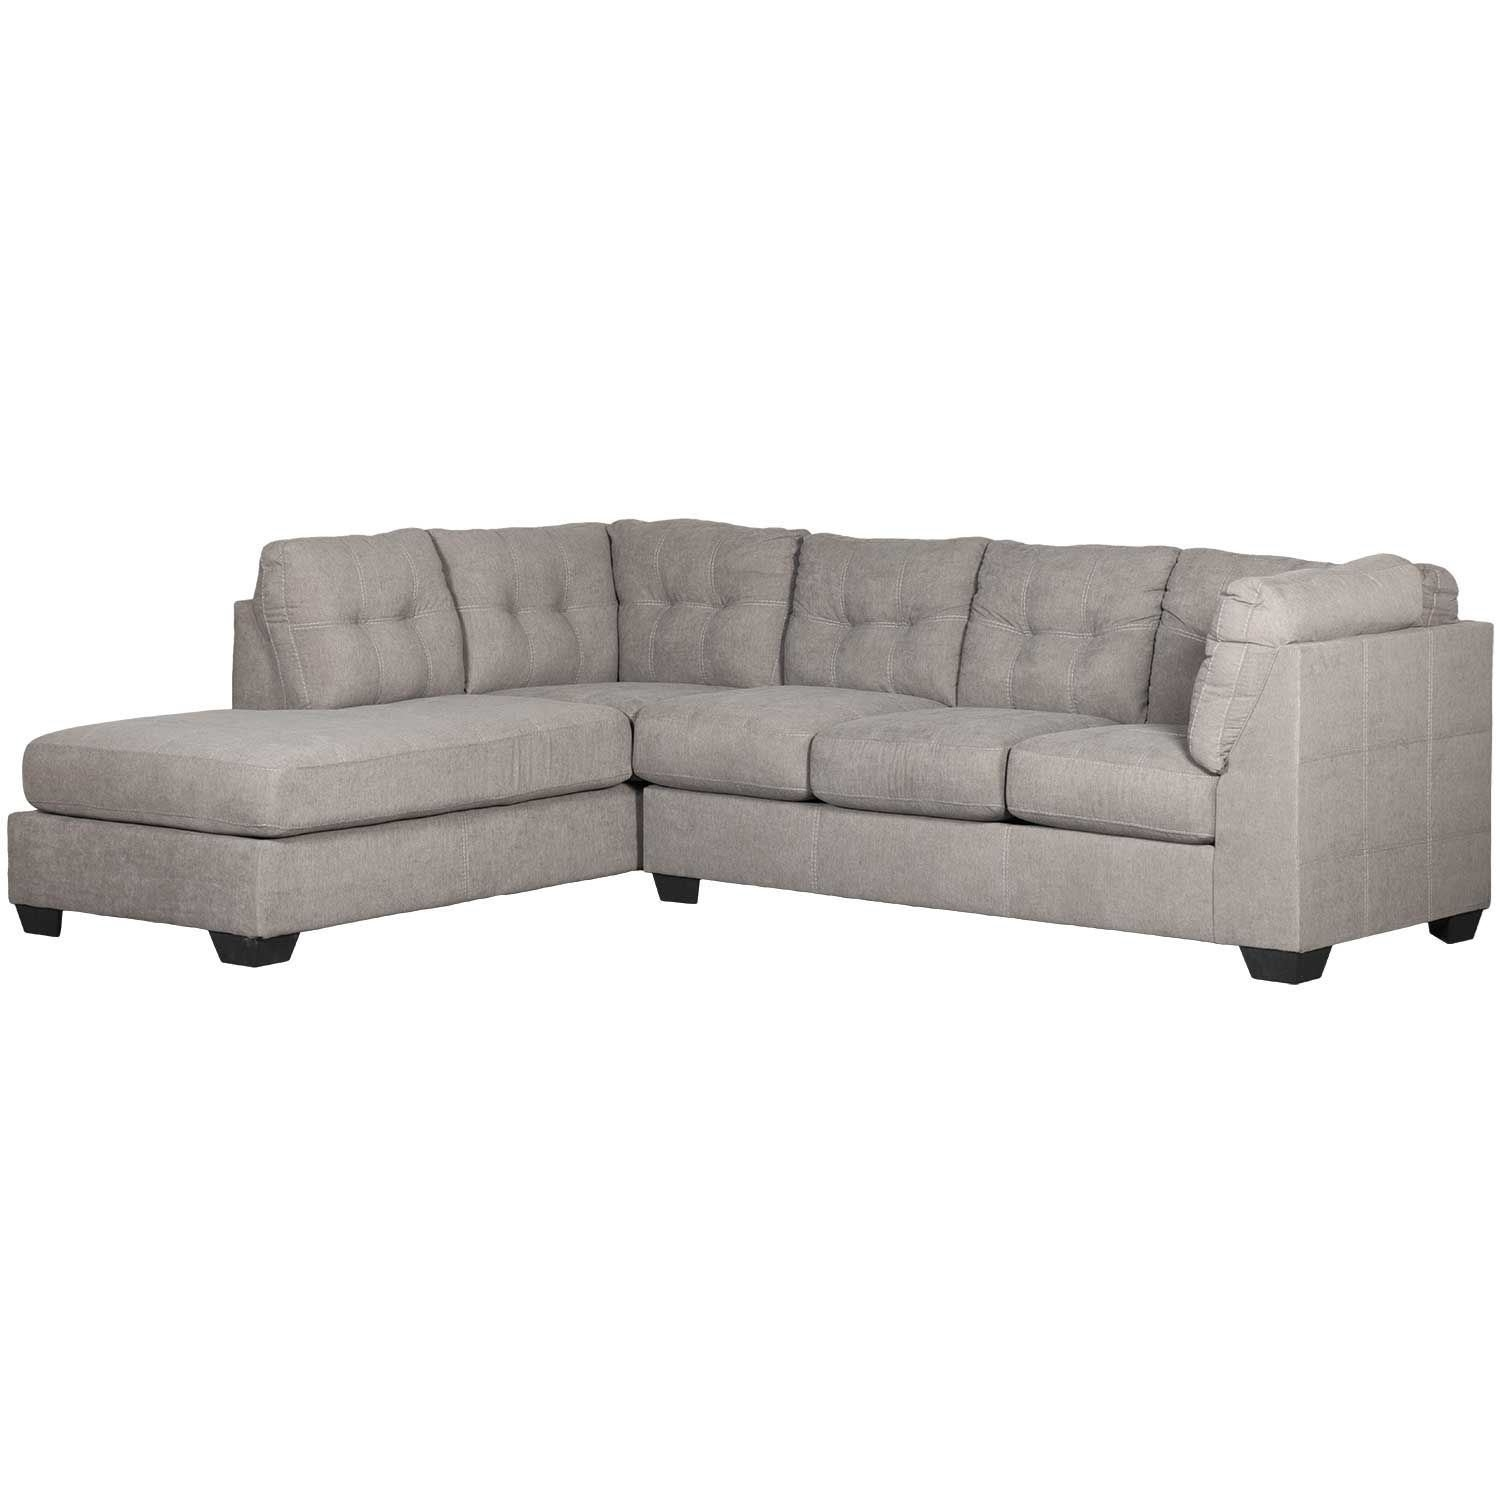 Maier Charcoal 2 Piece Sectional With Laf Chaise | 4520016/67 Intended For Marissa Ii 3 Piece Sectionals (Image 9 of 25)